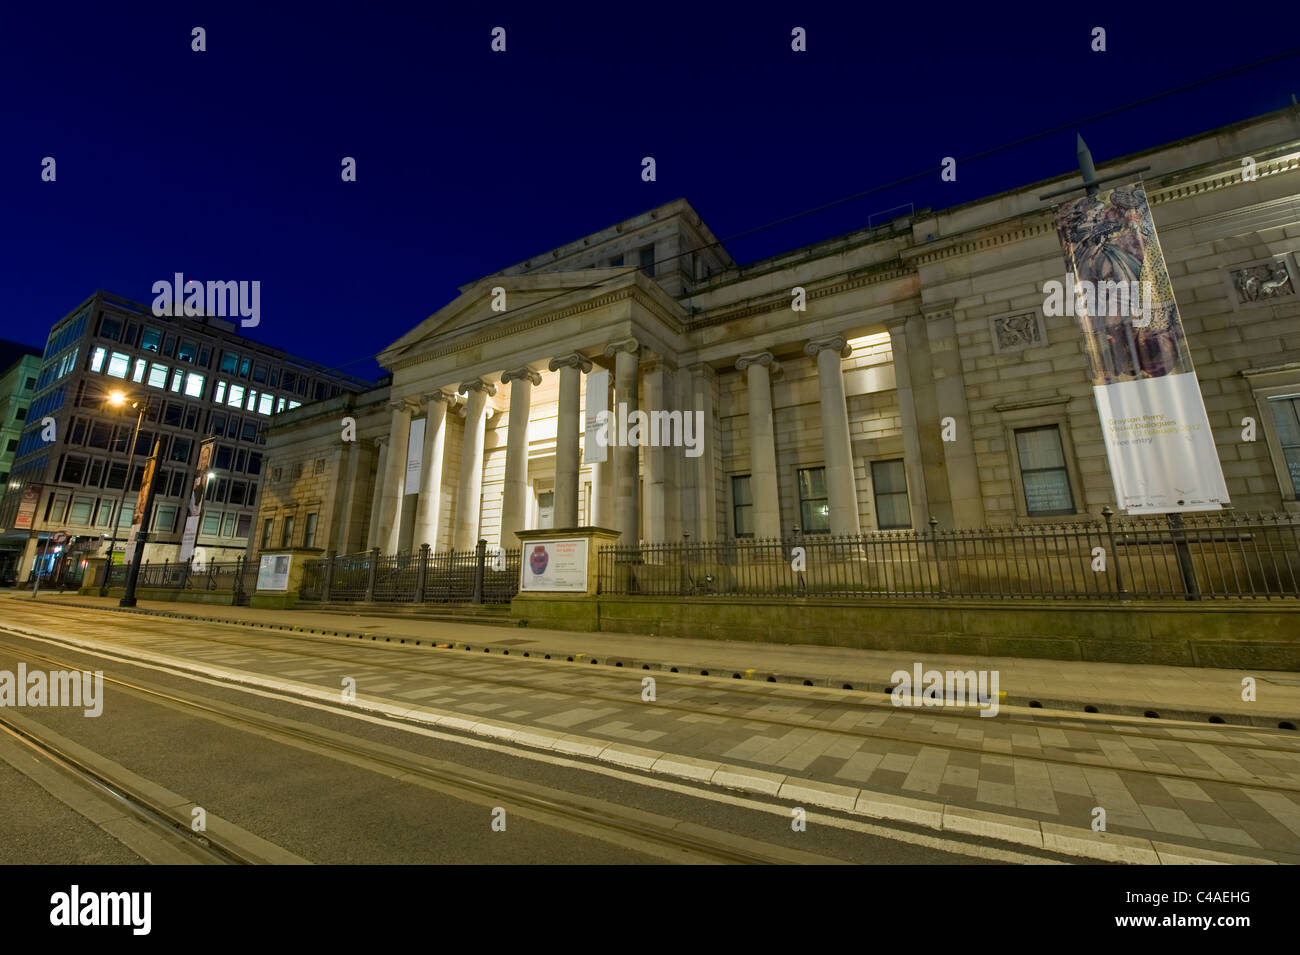 The Grade I listed Manchester Art Gallery building located on Mosley Street in the city centre of Manchester, UK, - Stock Image